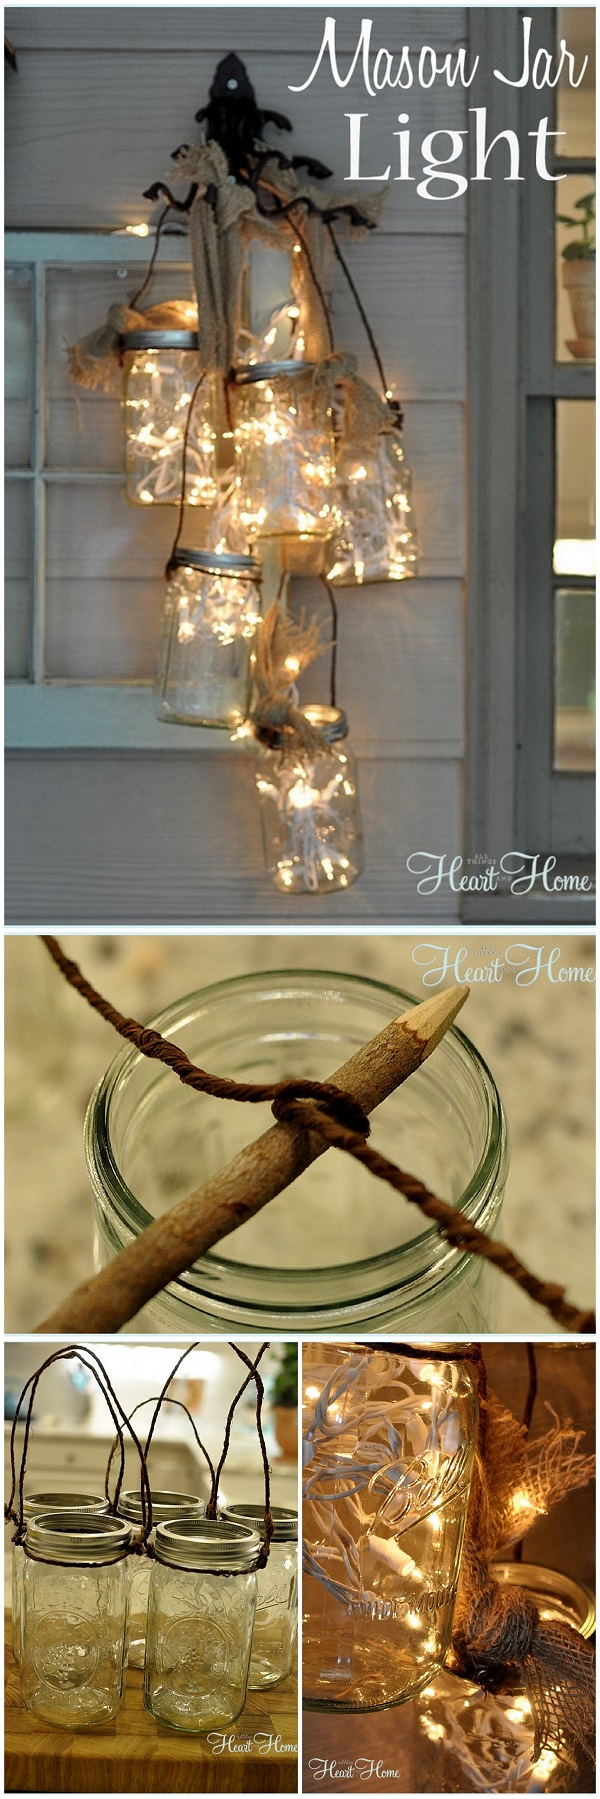 Check out this easy #DIY idea for #masonjar lights that you can make and #sell #homedecor #crafts